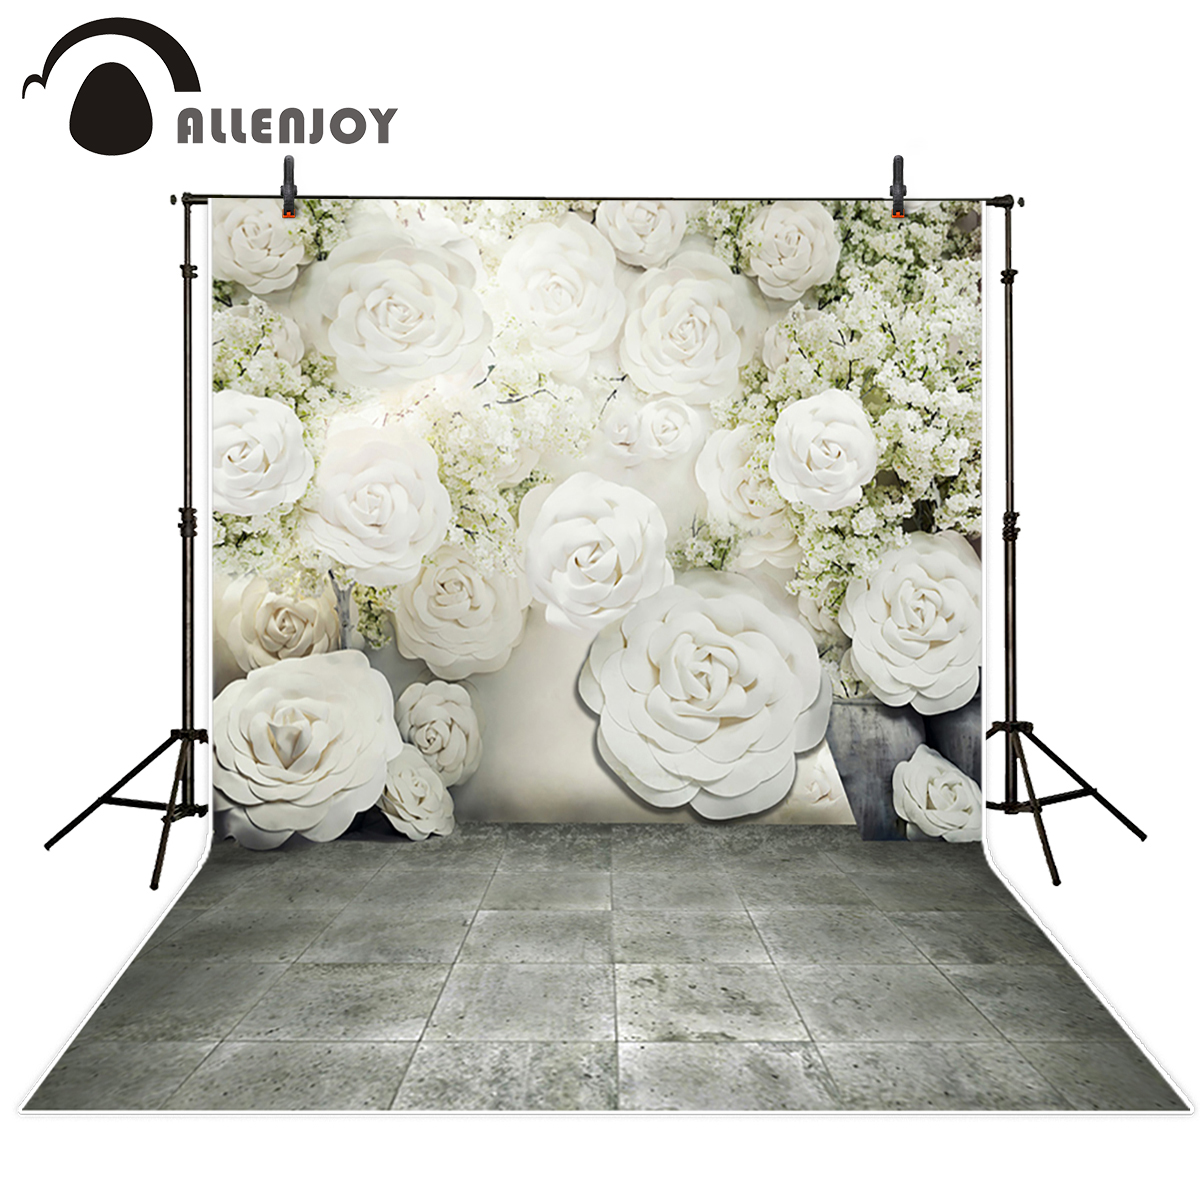 Allenjoy photography backdrops White Flowers Wedding backdrop Love Brick floor Background vinyl backdrops for photo studio huayi 4pc 2x2ft wood floor brick wall backdrop vinyl photography backdrops photo props background small object shooting gy 019